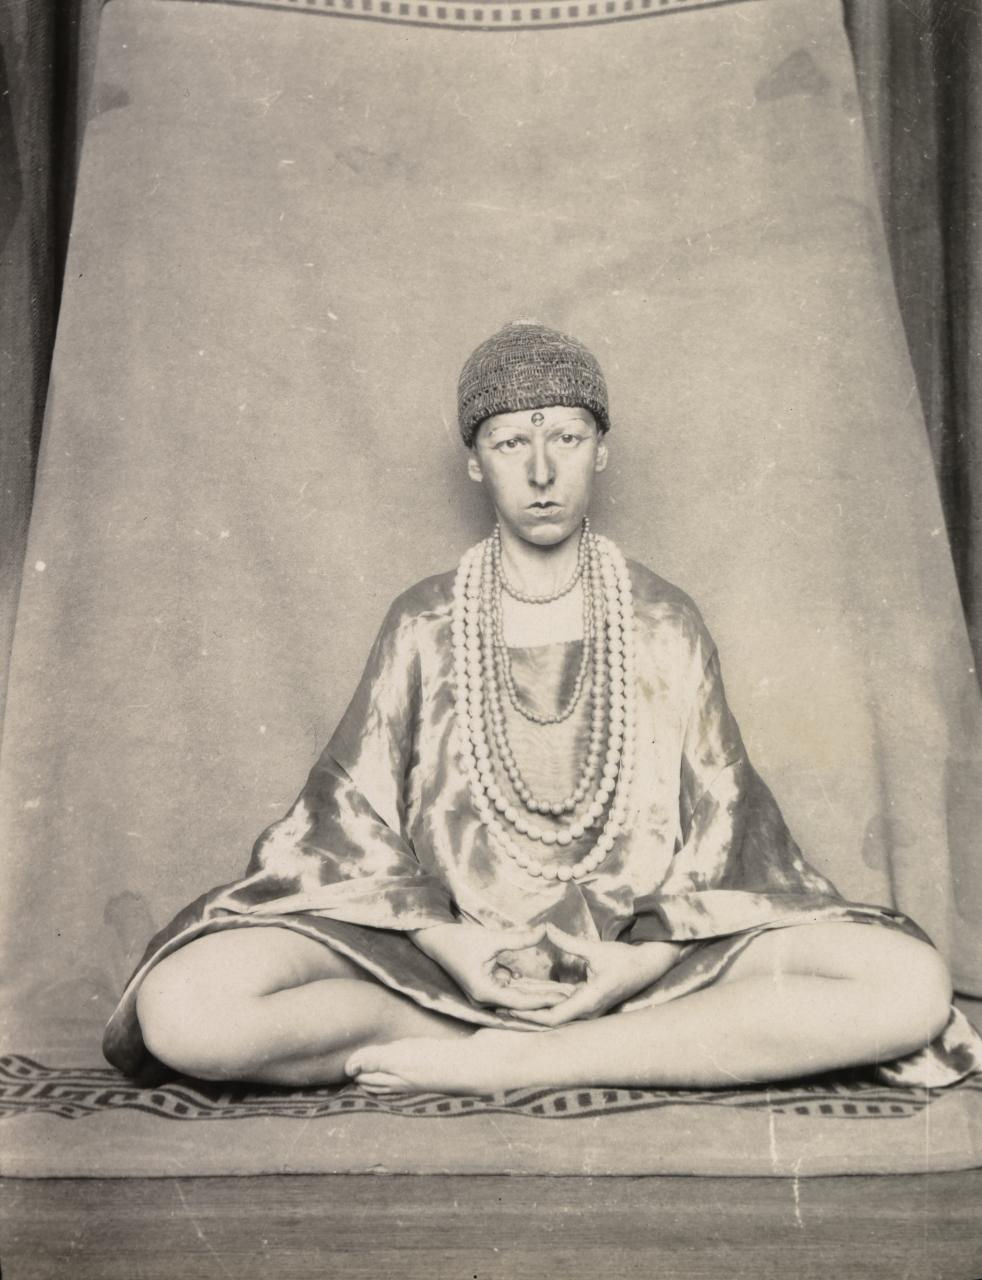 Claude Cahun, French (1894–1954).  Self-portrait , 1927. Gelatin silver print, 4 1/8 × 3 1/8 inches. The Nelson-Atkins Museum of Art, Kansas City, Missouri. Gift of the Hall Family Foundation, 2016.75.26.